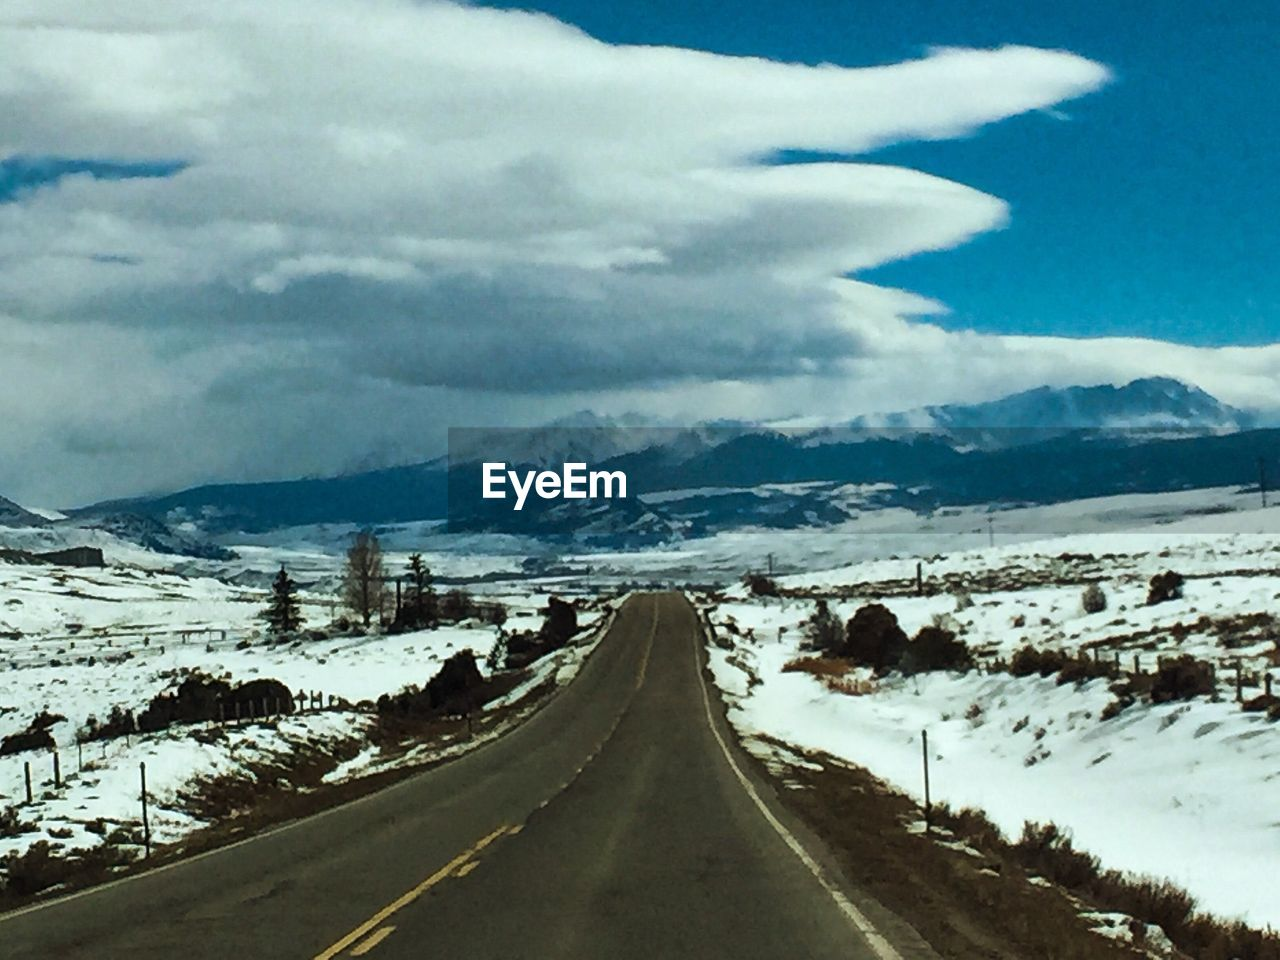 sky, transportation, cloud - sky, road, direction, the way forward, scenics - nature, diminishing perspective, mountain, cold temperature, landscape, nature, tranquil scene, beauty in nature, no people, winter, tranquility, snow, vanishing point, outdoors, snowcapped mountain, long